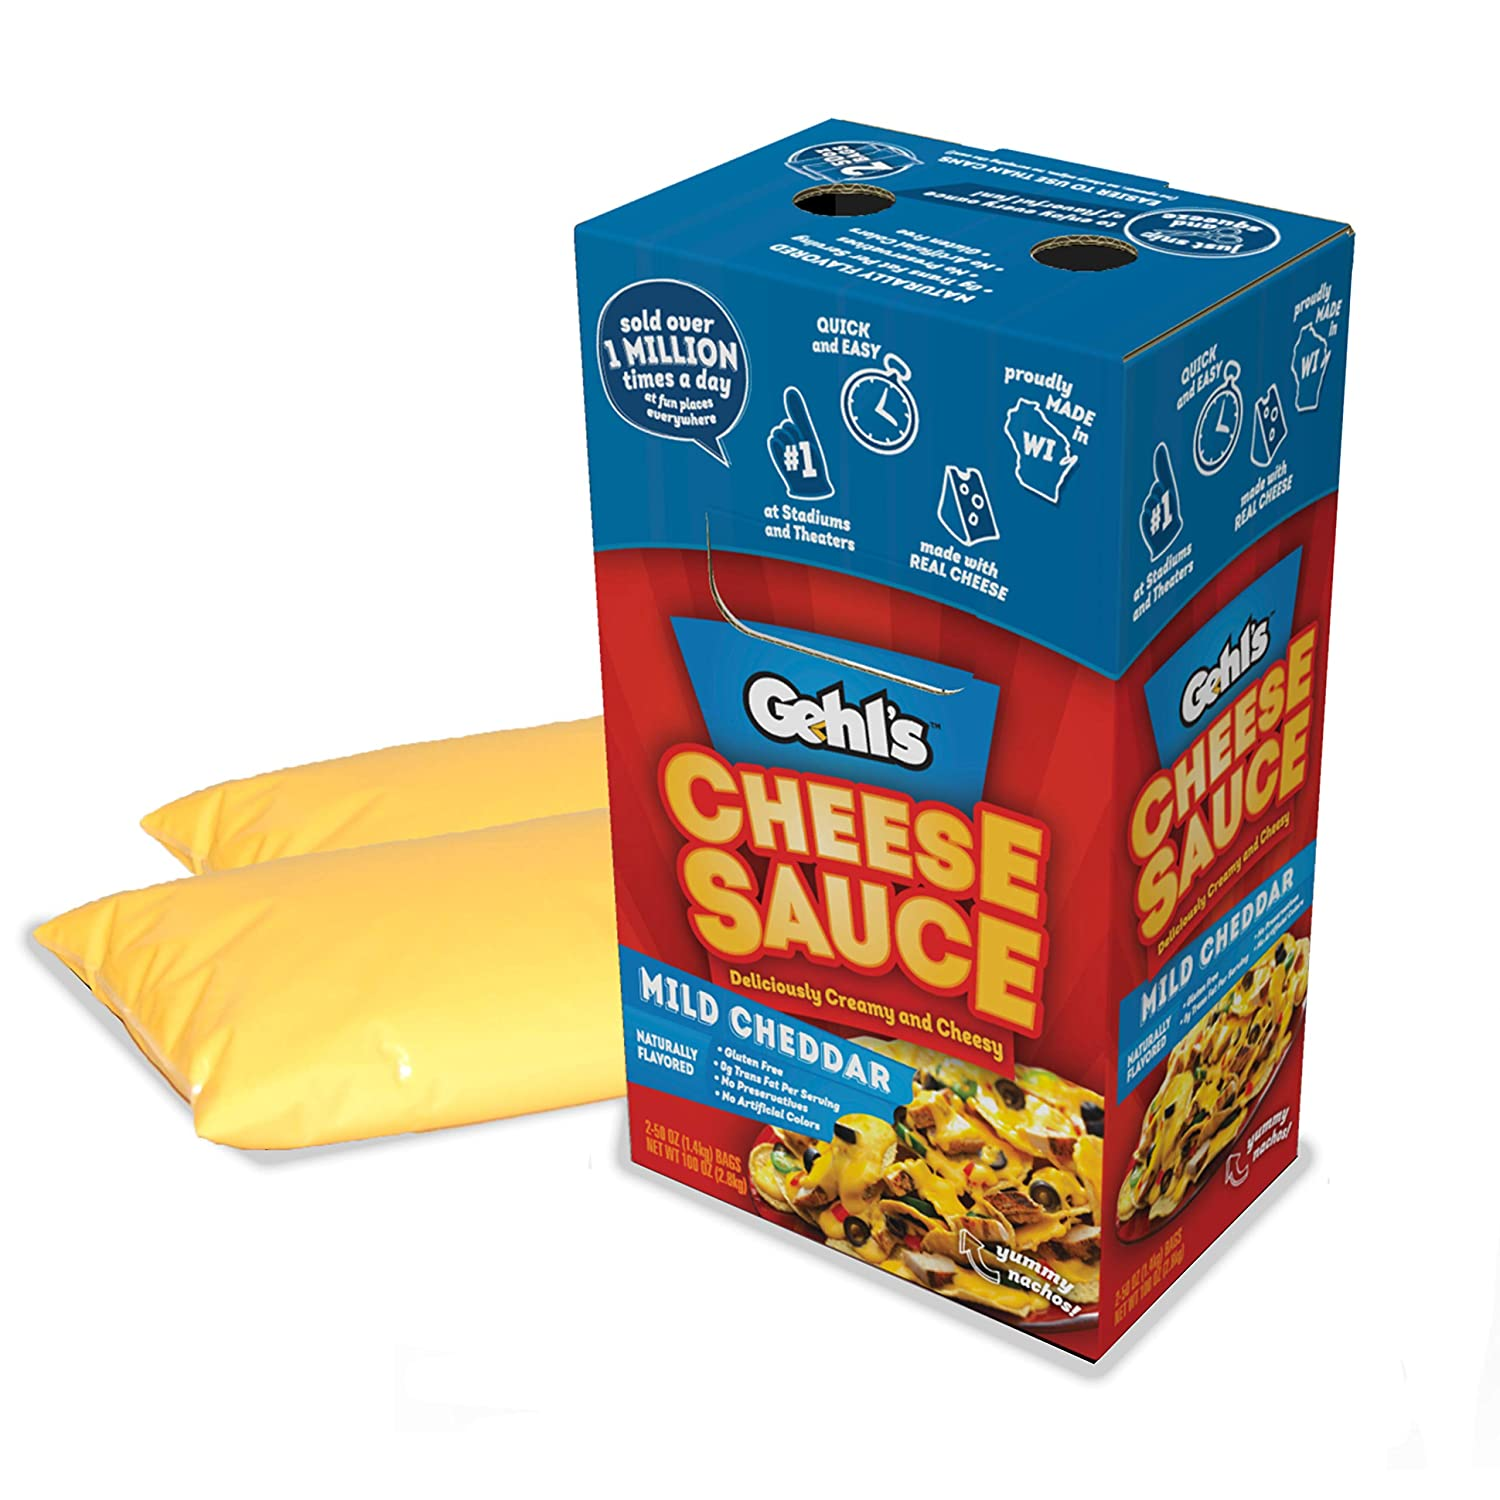 Quality inspection Gehl's 5 popular Mild Cheddar Cheese Sauce Queso Nacho Bulk –